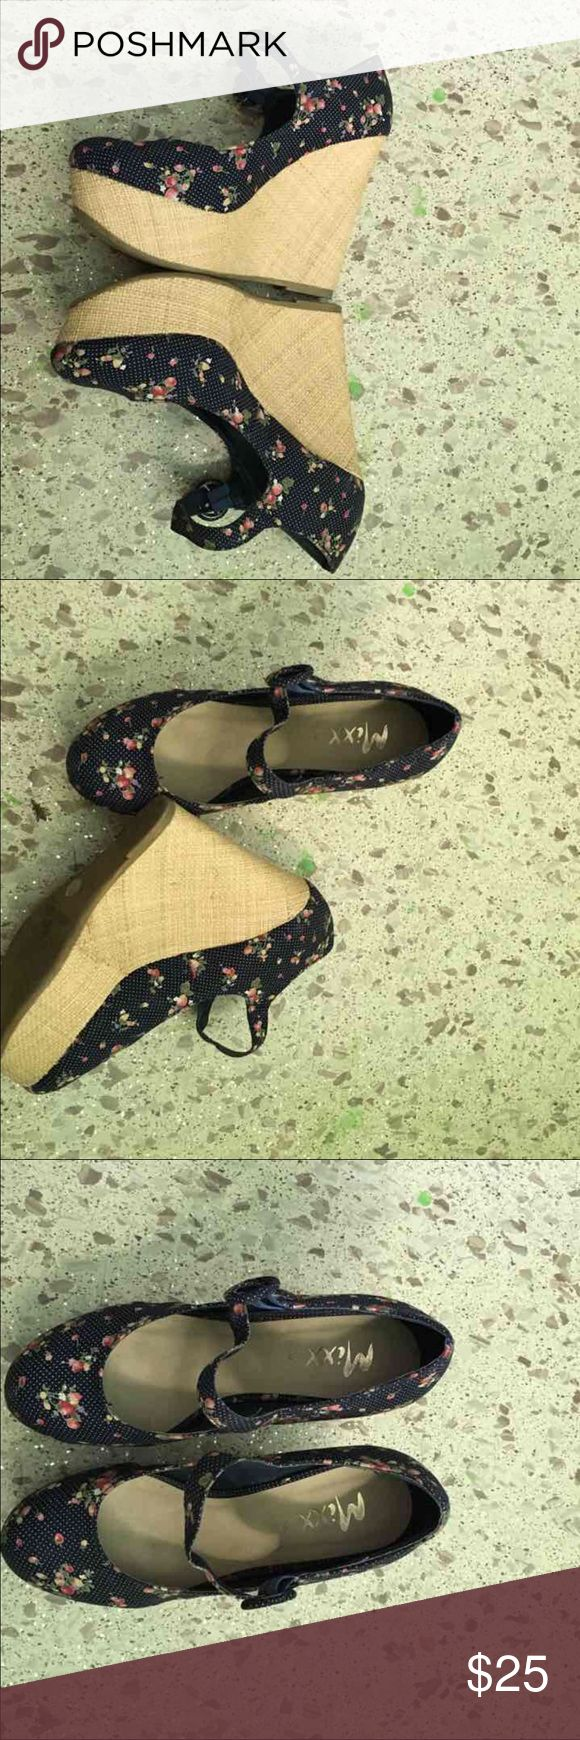 Beautiful Floral Wedge Size 7 comfortable pretty ladies Wedge Shoes Wedges